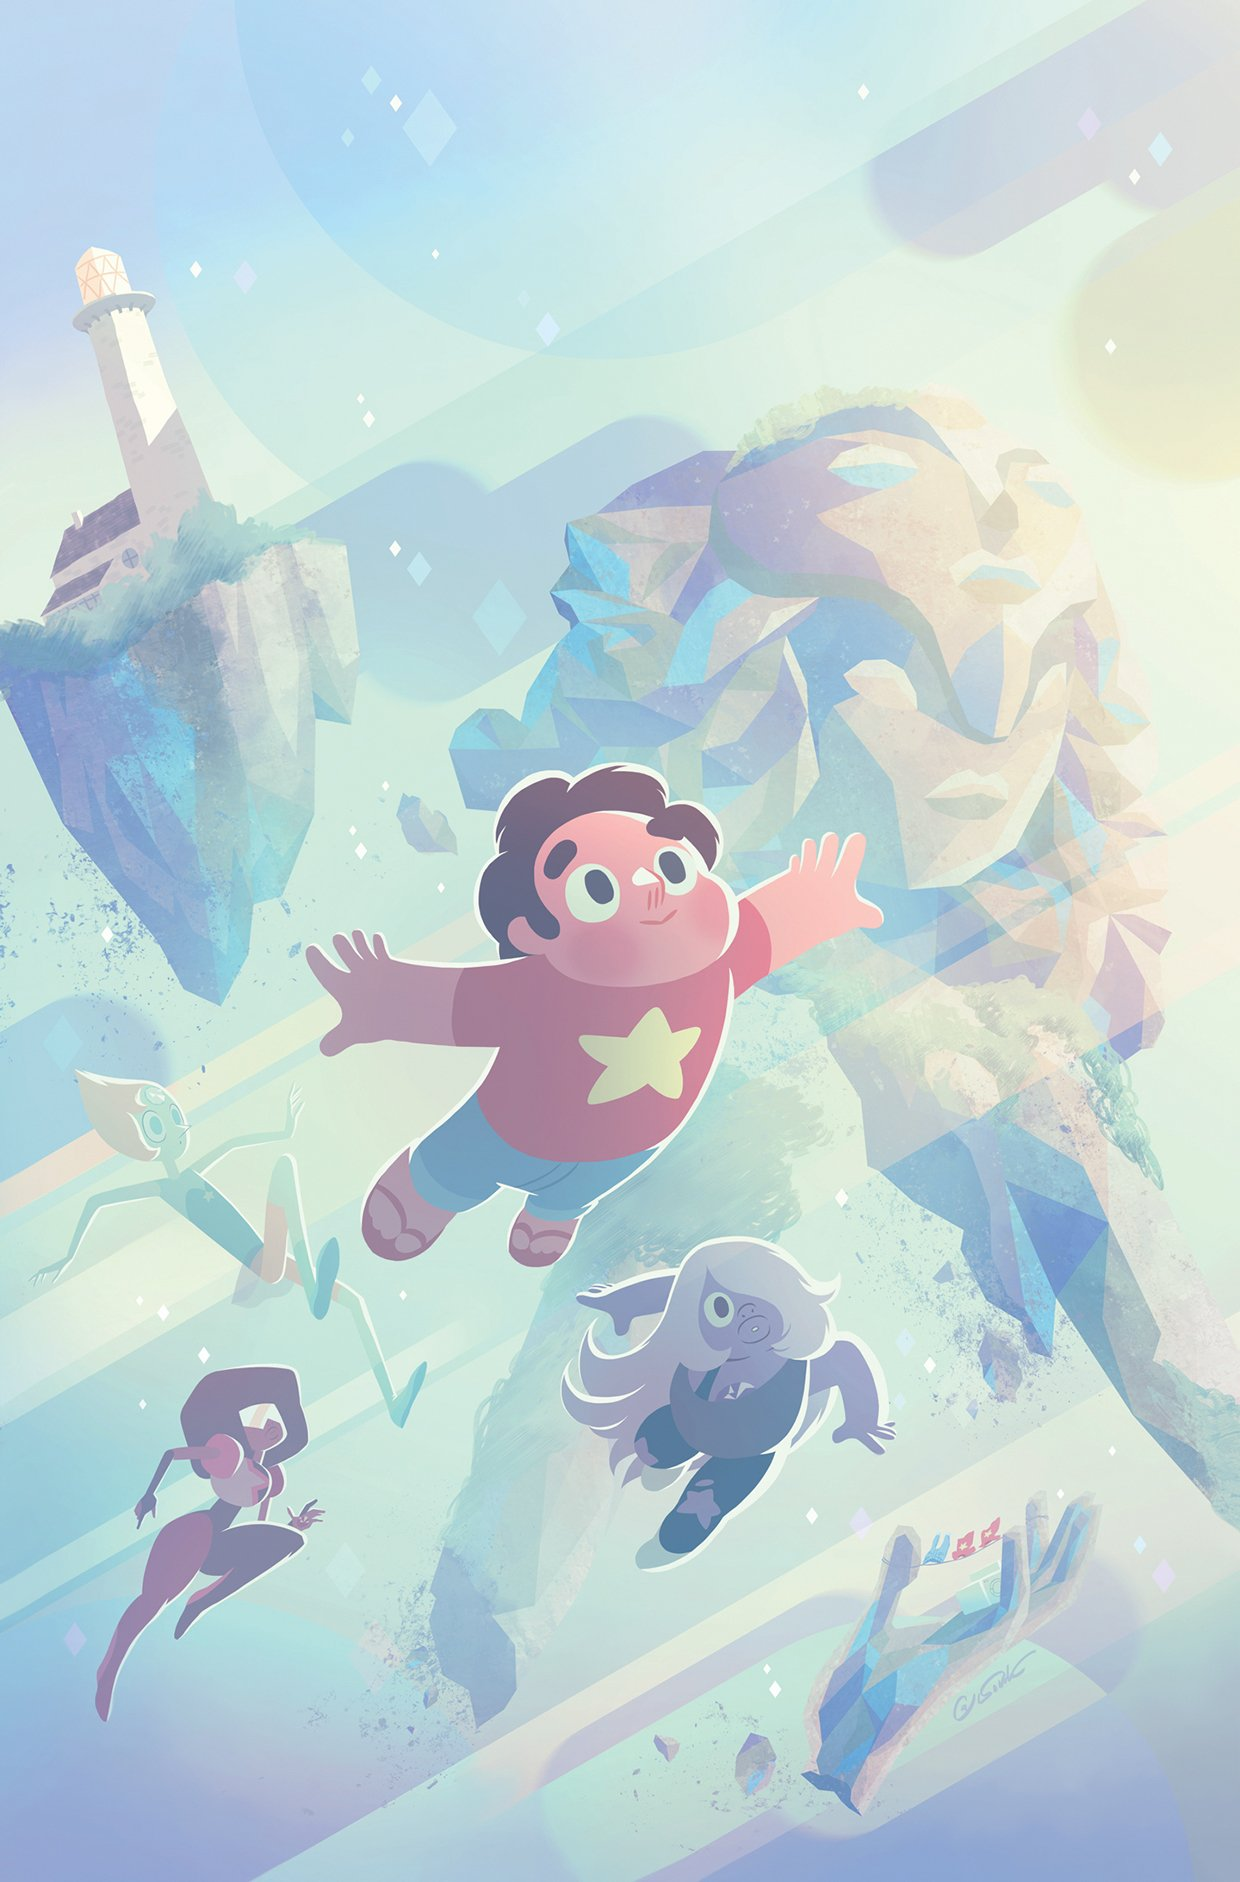 Steven soaring through the sky with the Crystal Gems, Garnet, Amethyst and Pearl following behind with the Crystal Temple in the background.